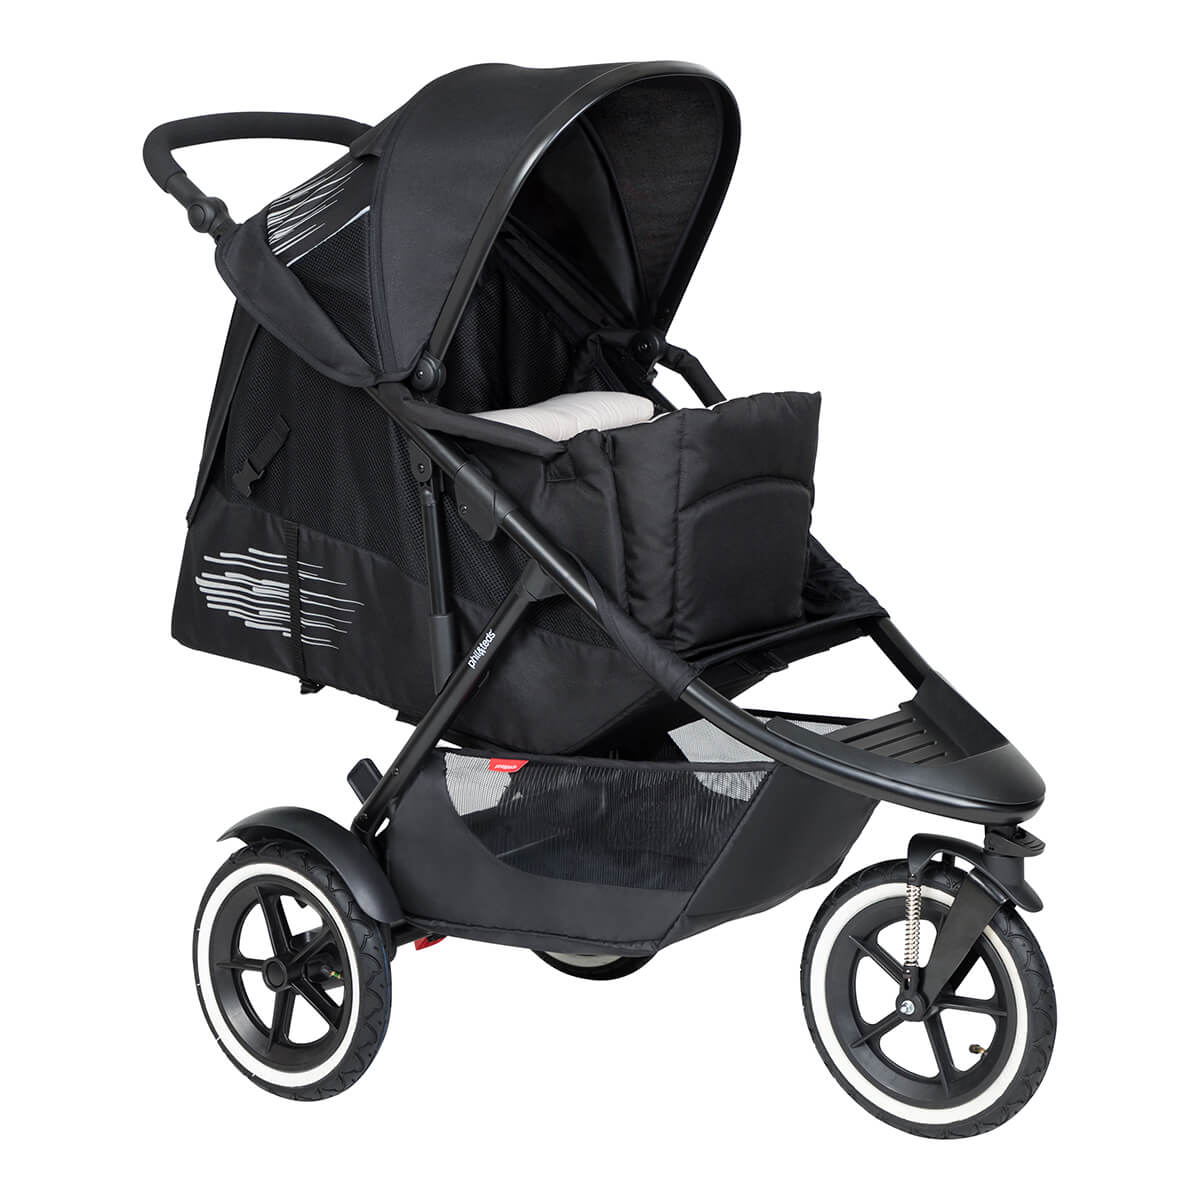 https://cdn.accentuate.io/4509866590305/19793938874538/philteds-sport-buggy-with-cocoon-full-recline-v1626485323883.jpg?1200x1200